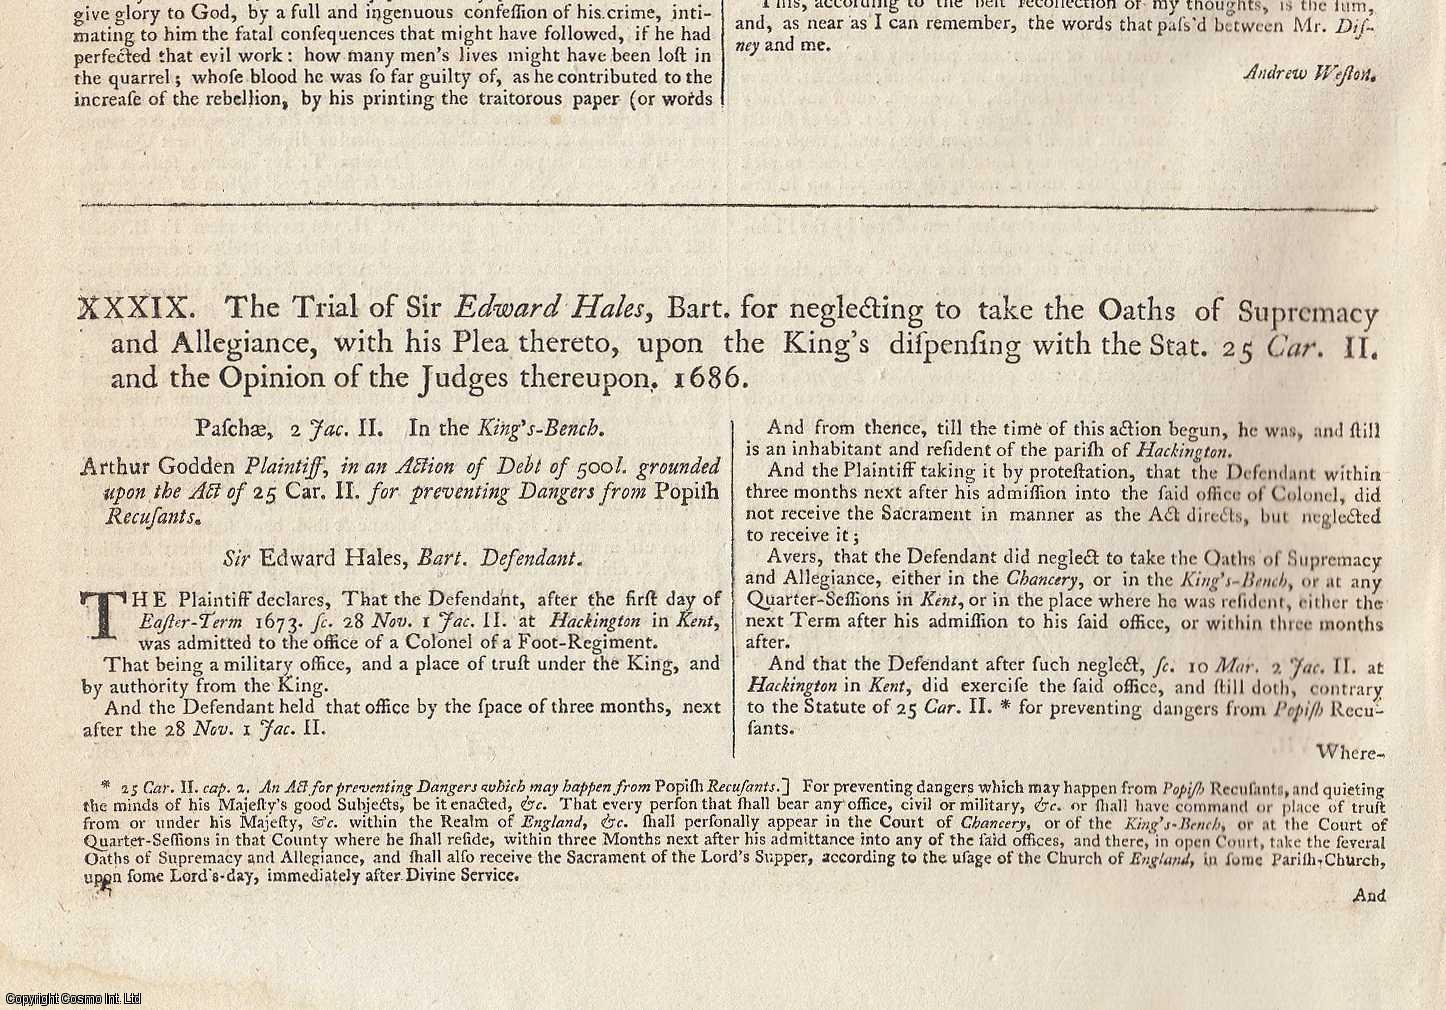 GLORIOUS REVOLUTION.  The Trial of Sir Edward Hales, Bart. For neglecting to take the Oaths of Supremacy and Allegiance, with his Plea thereto, upon the King's dispensing with the Stat. 25 Car. II and the Opinion of the Judges thereupon, 1686., [Trial].